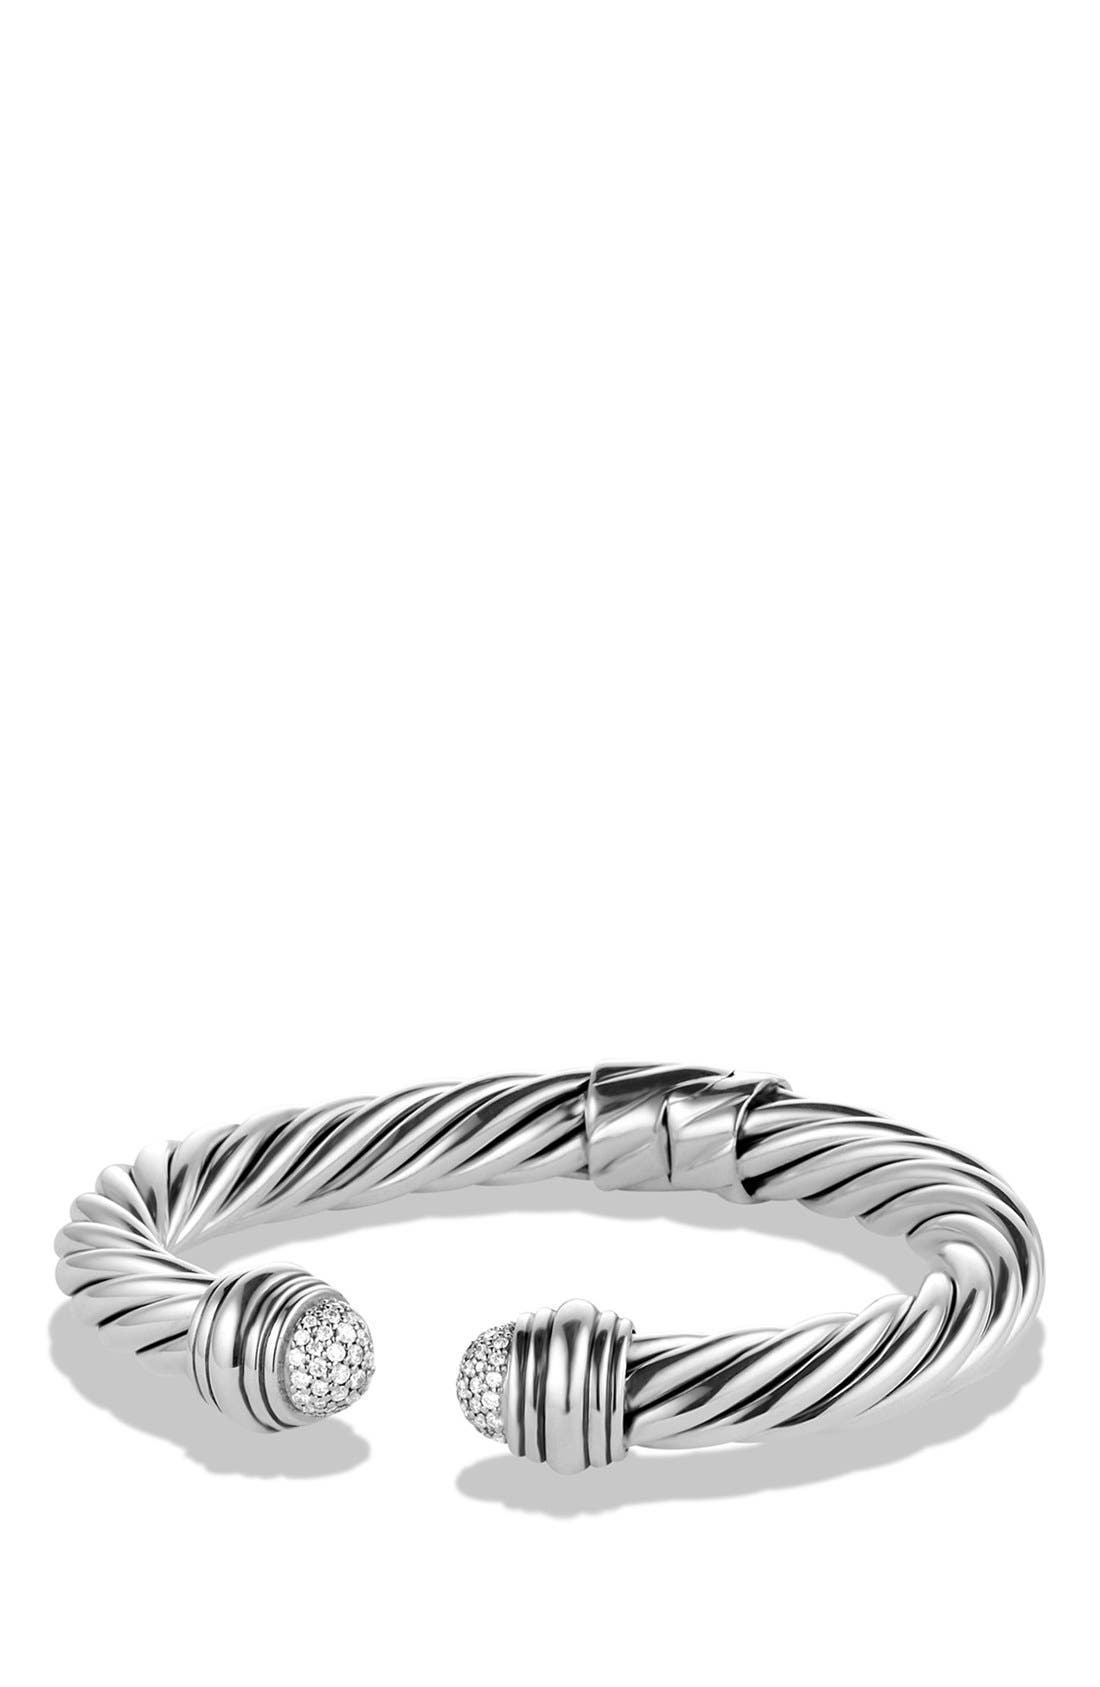 DAVID YURMAN Cable Classics Pavé Tip Bracelet with Diamonds